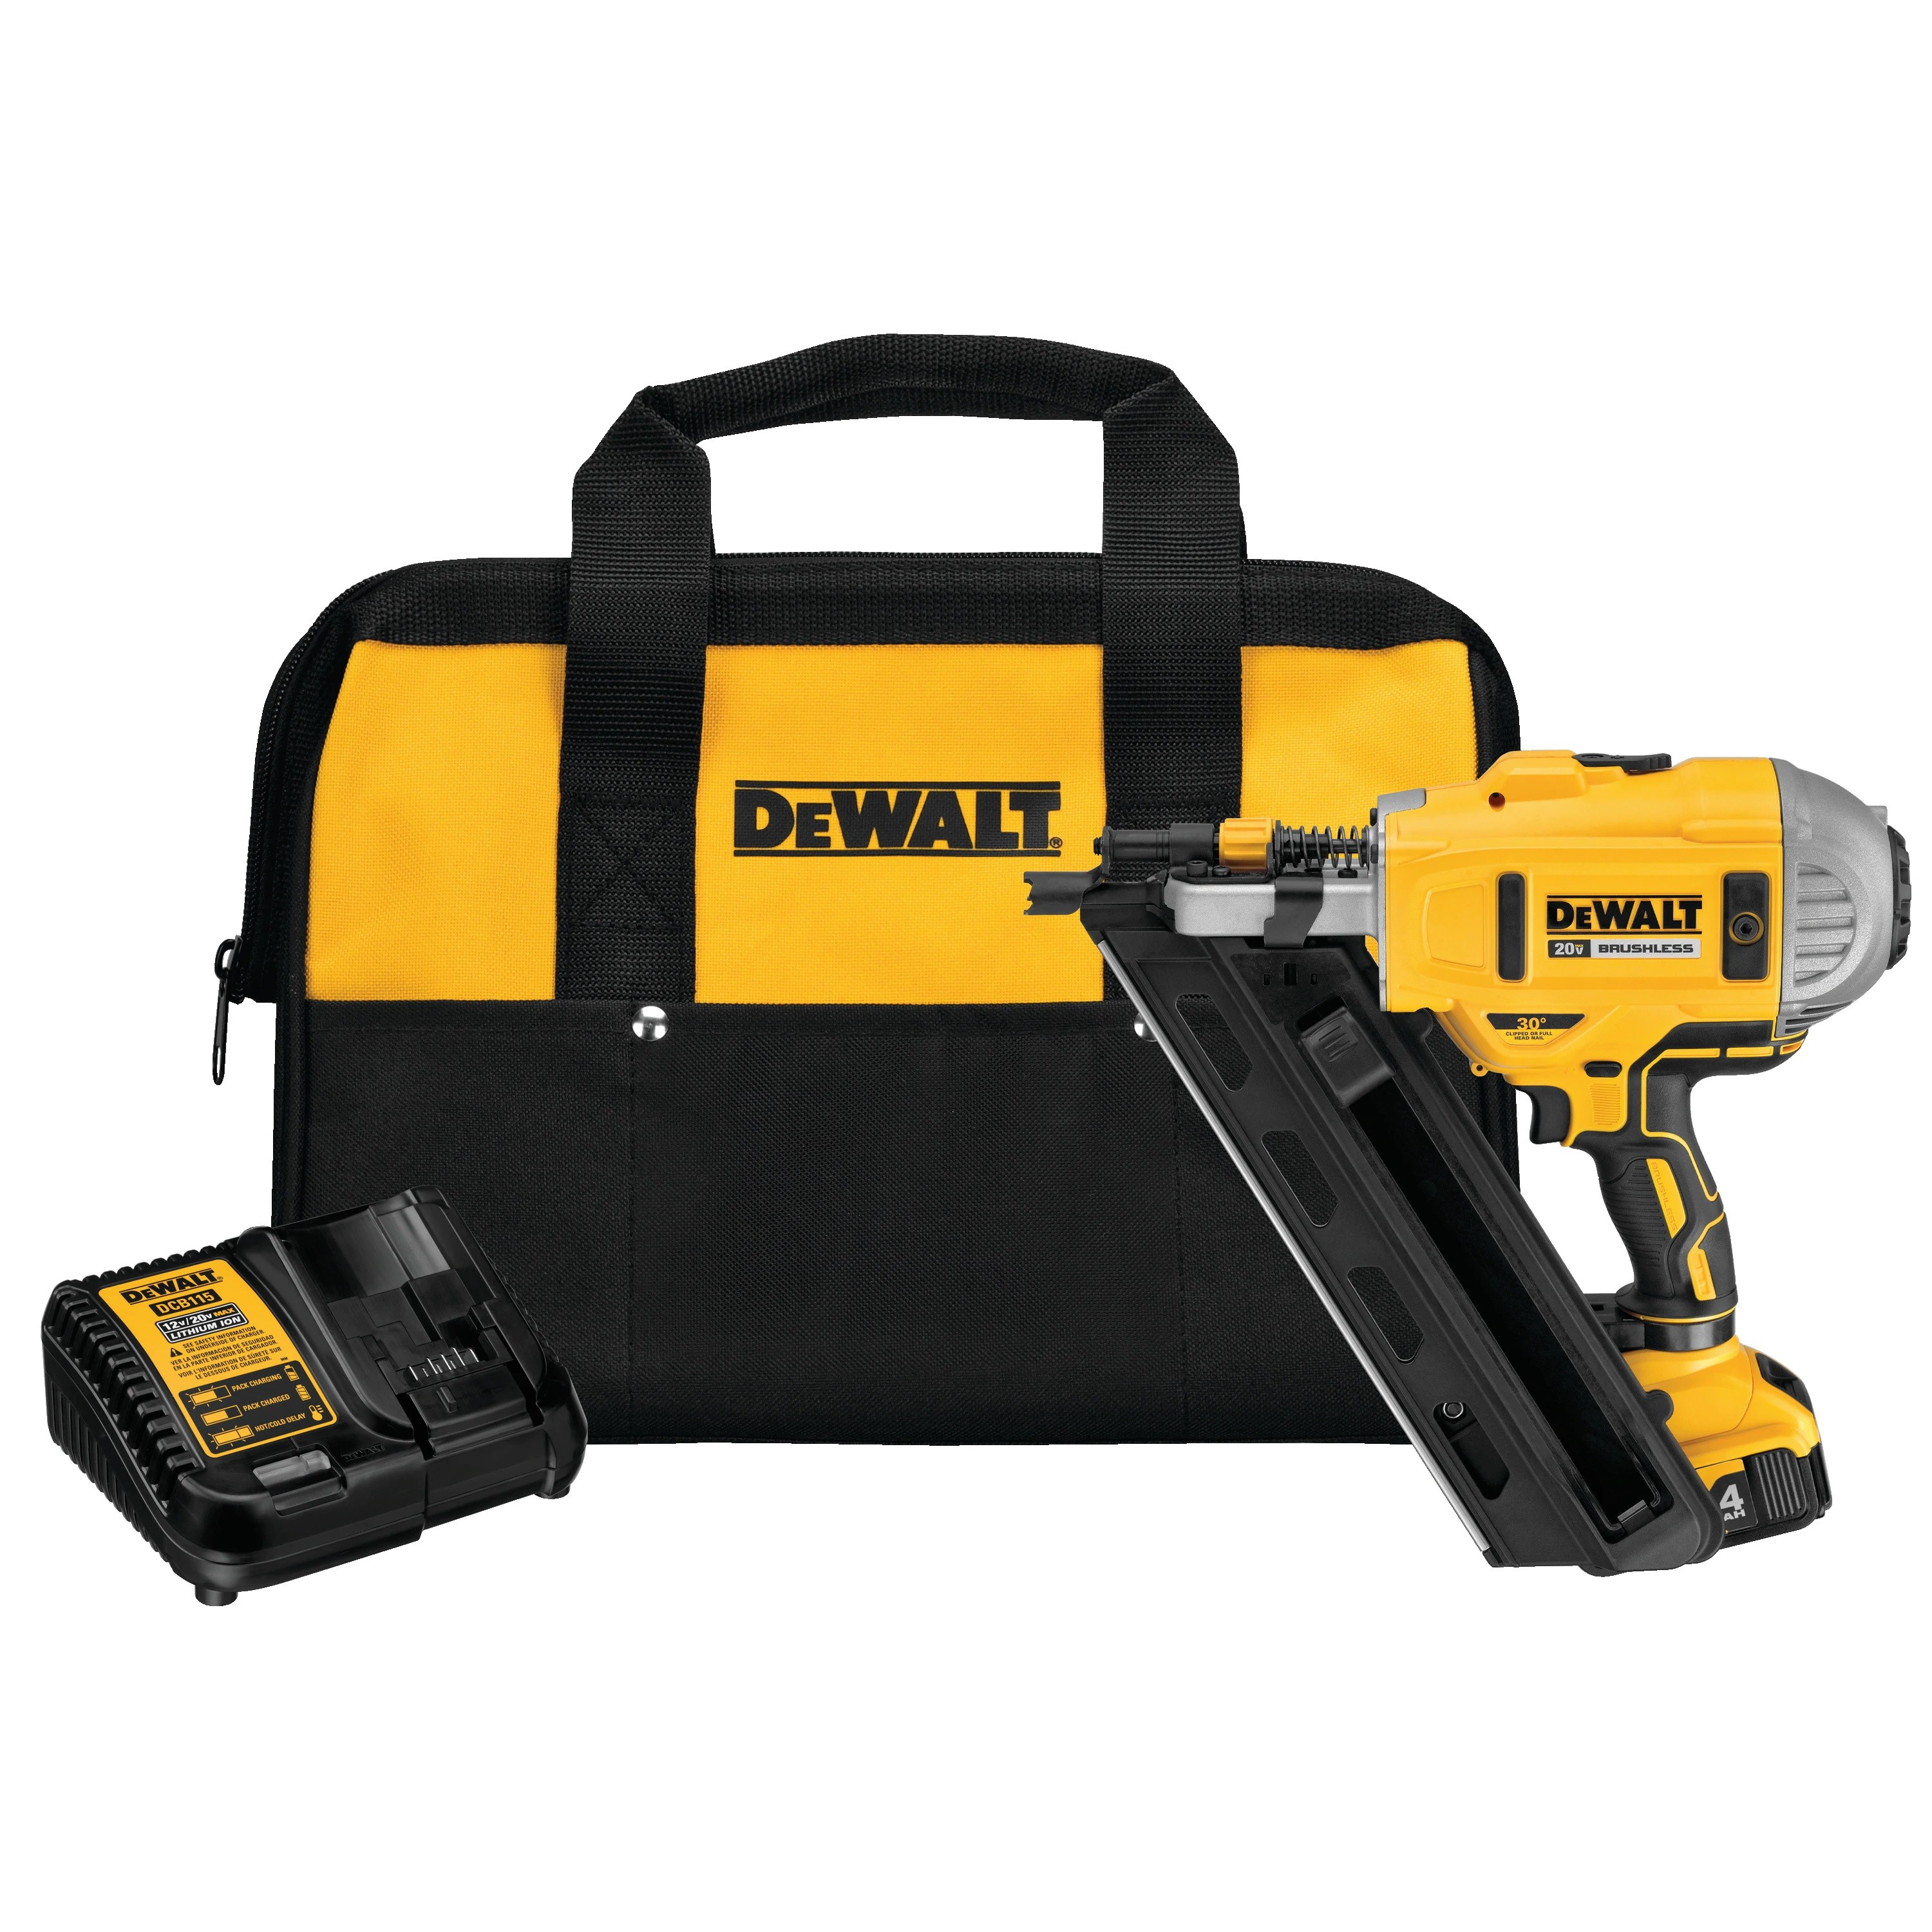 Punch DeWalt: technical specifications, manufacturer, reviews of the best models 3